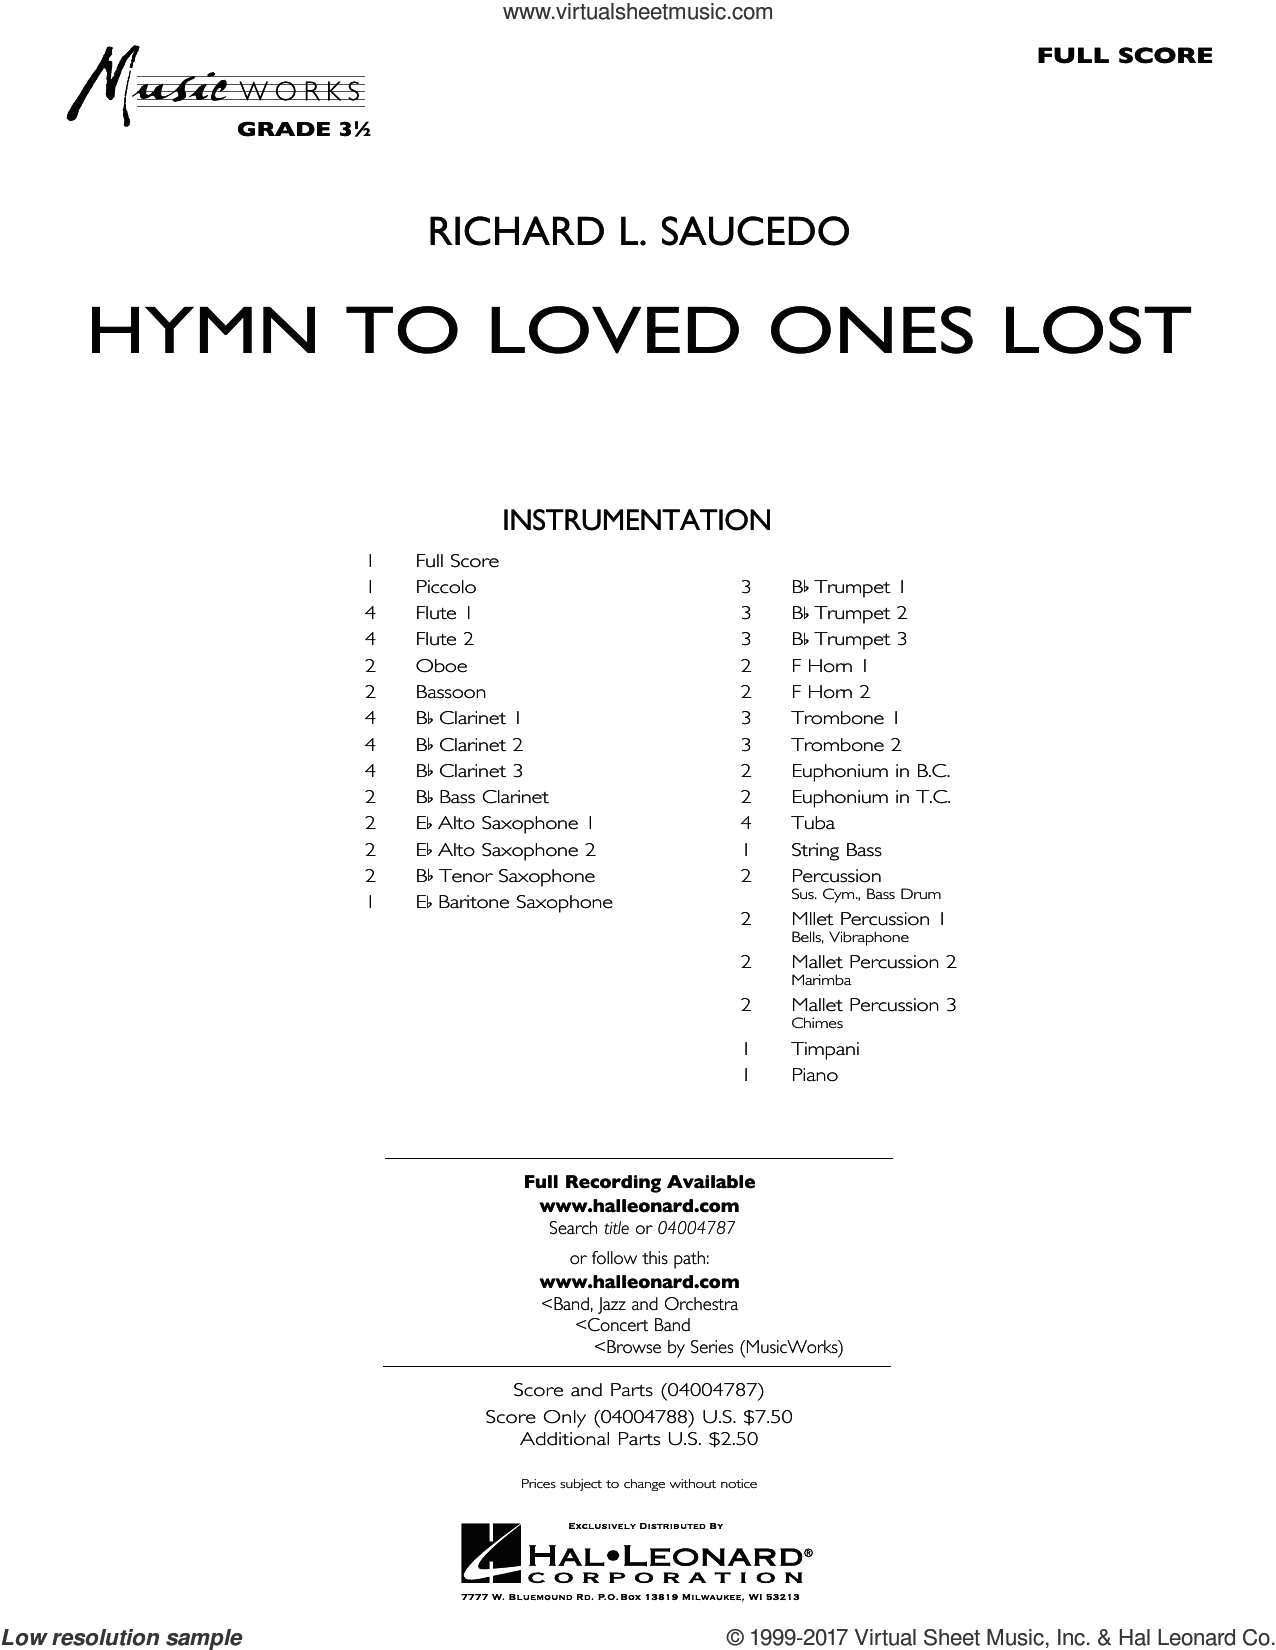 Hymn to Loved Ones Lost (COMPLETE) sheet music for concert band by Richard L. Saucedo, intermediate. Score Image Preview.